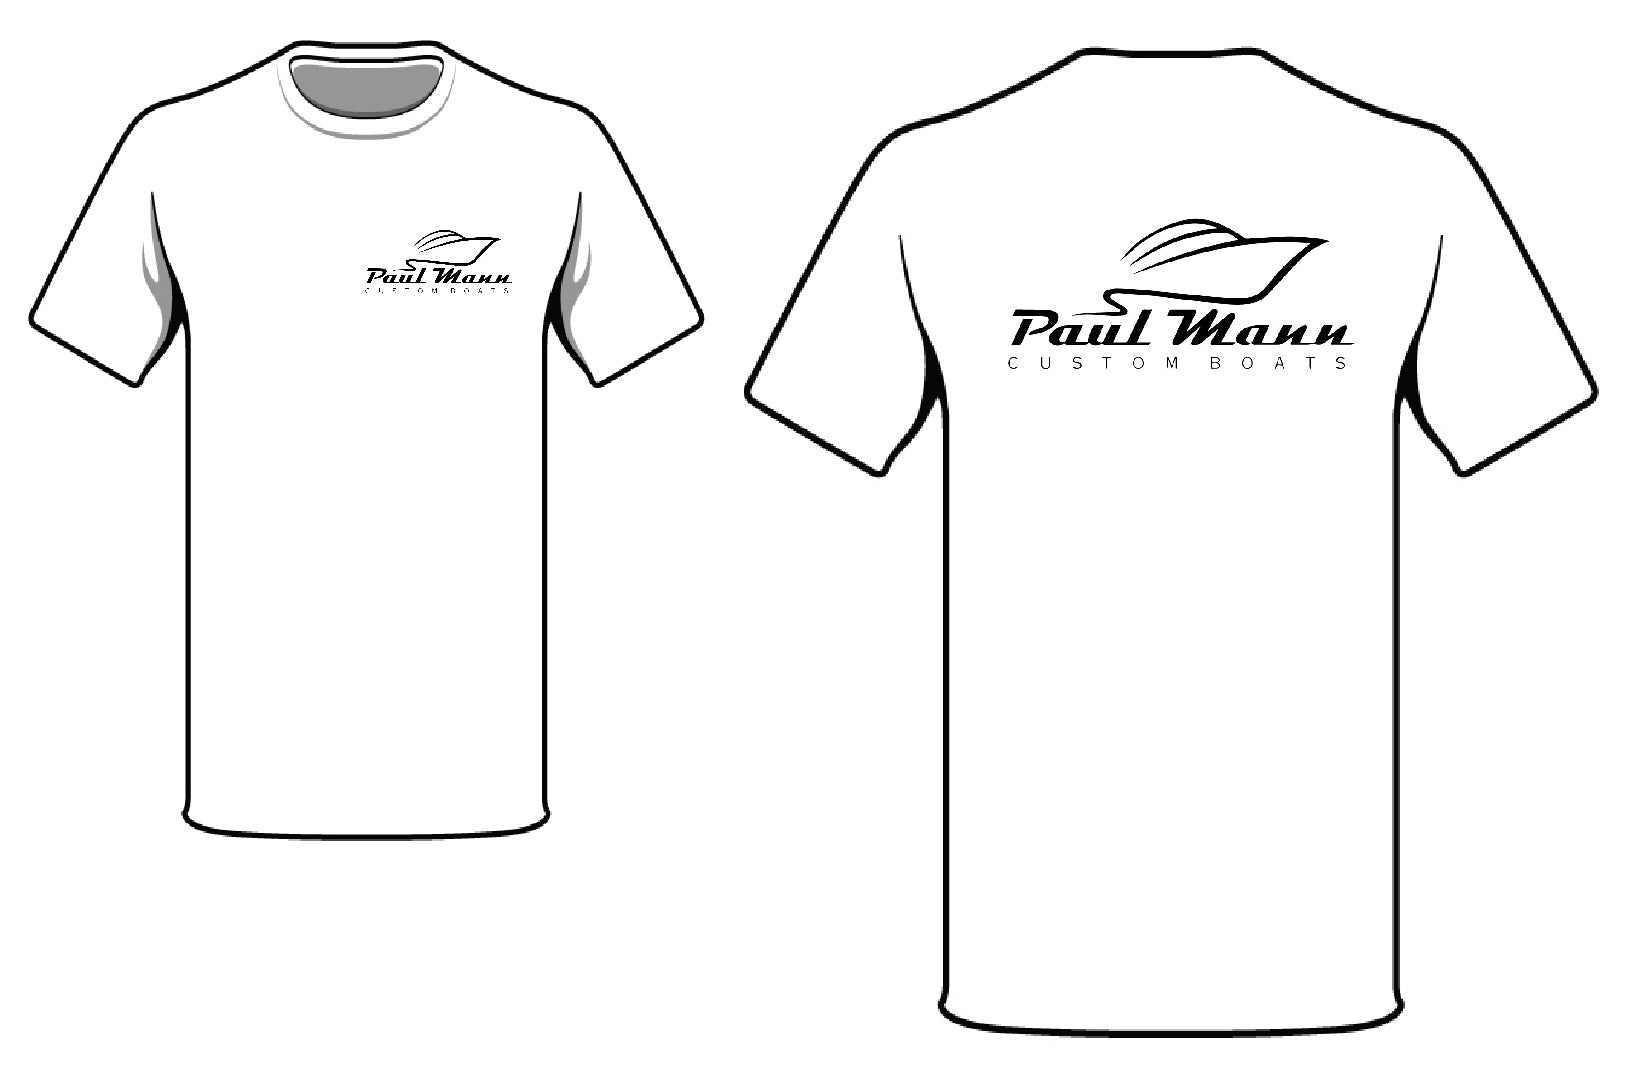 Paul Mann Boats T-Shirt